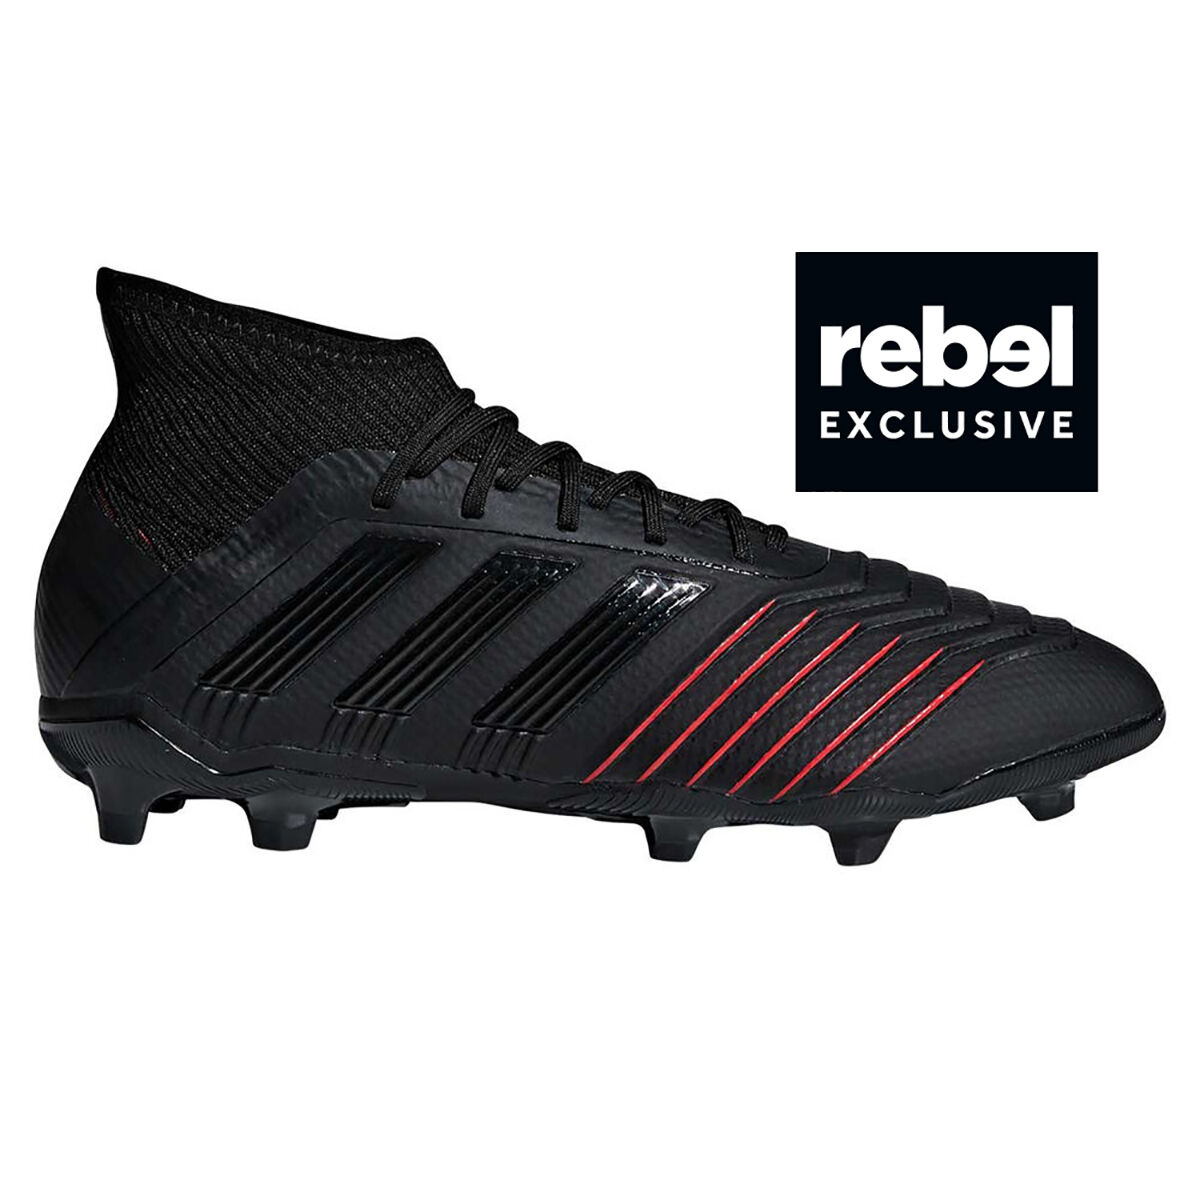 c4ac140e france adidas predator 19.1 kids football boots black red us 11 black red  93347 be9ba